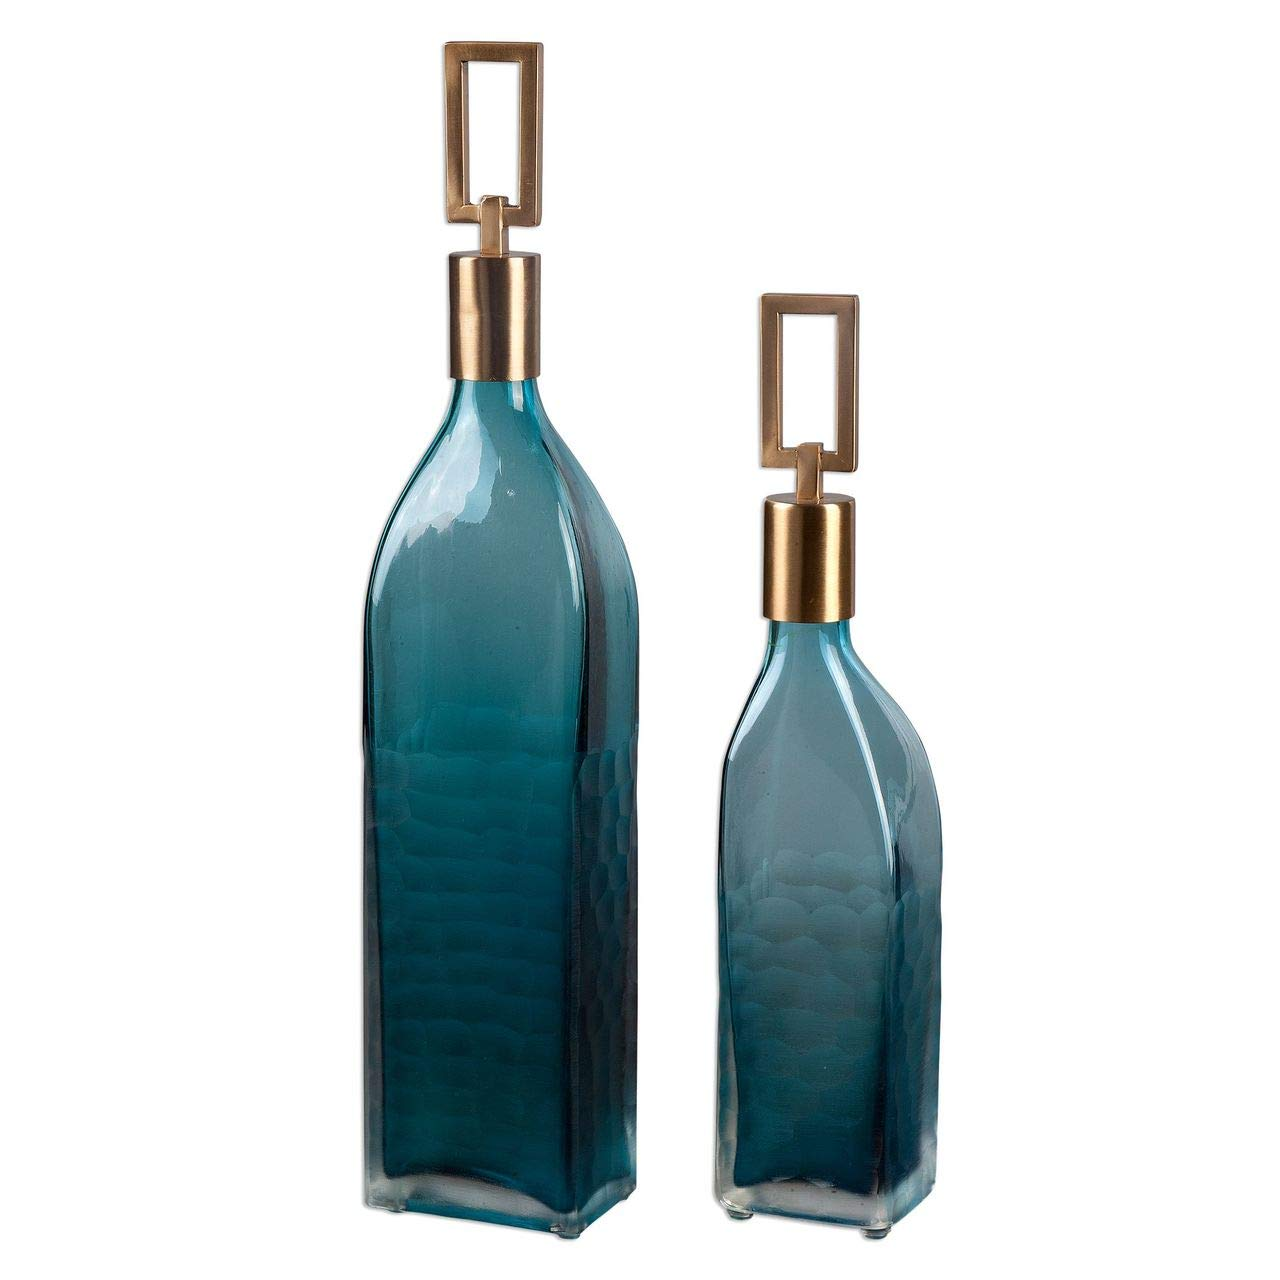 Uttermost 20076 Annabella Glass Bottles, Set of Two, Teal